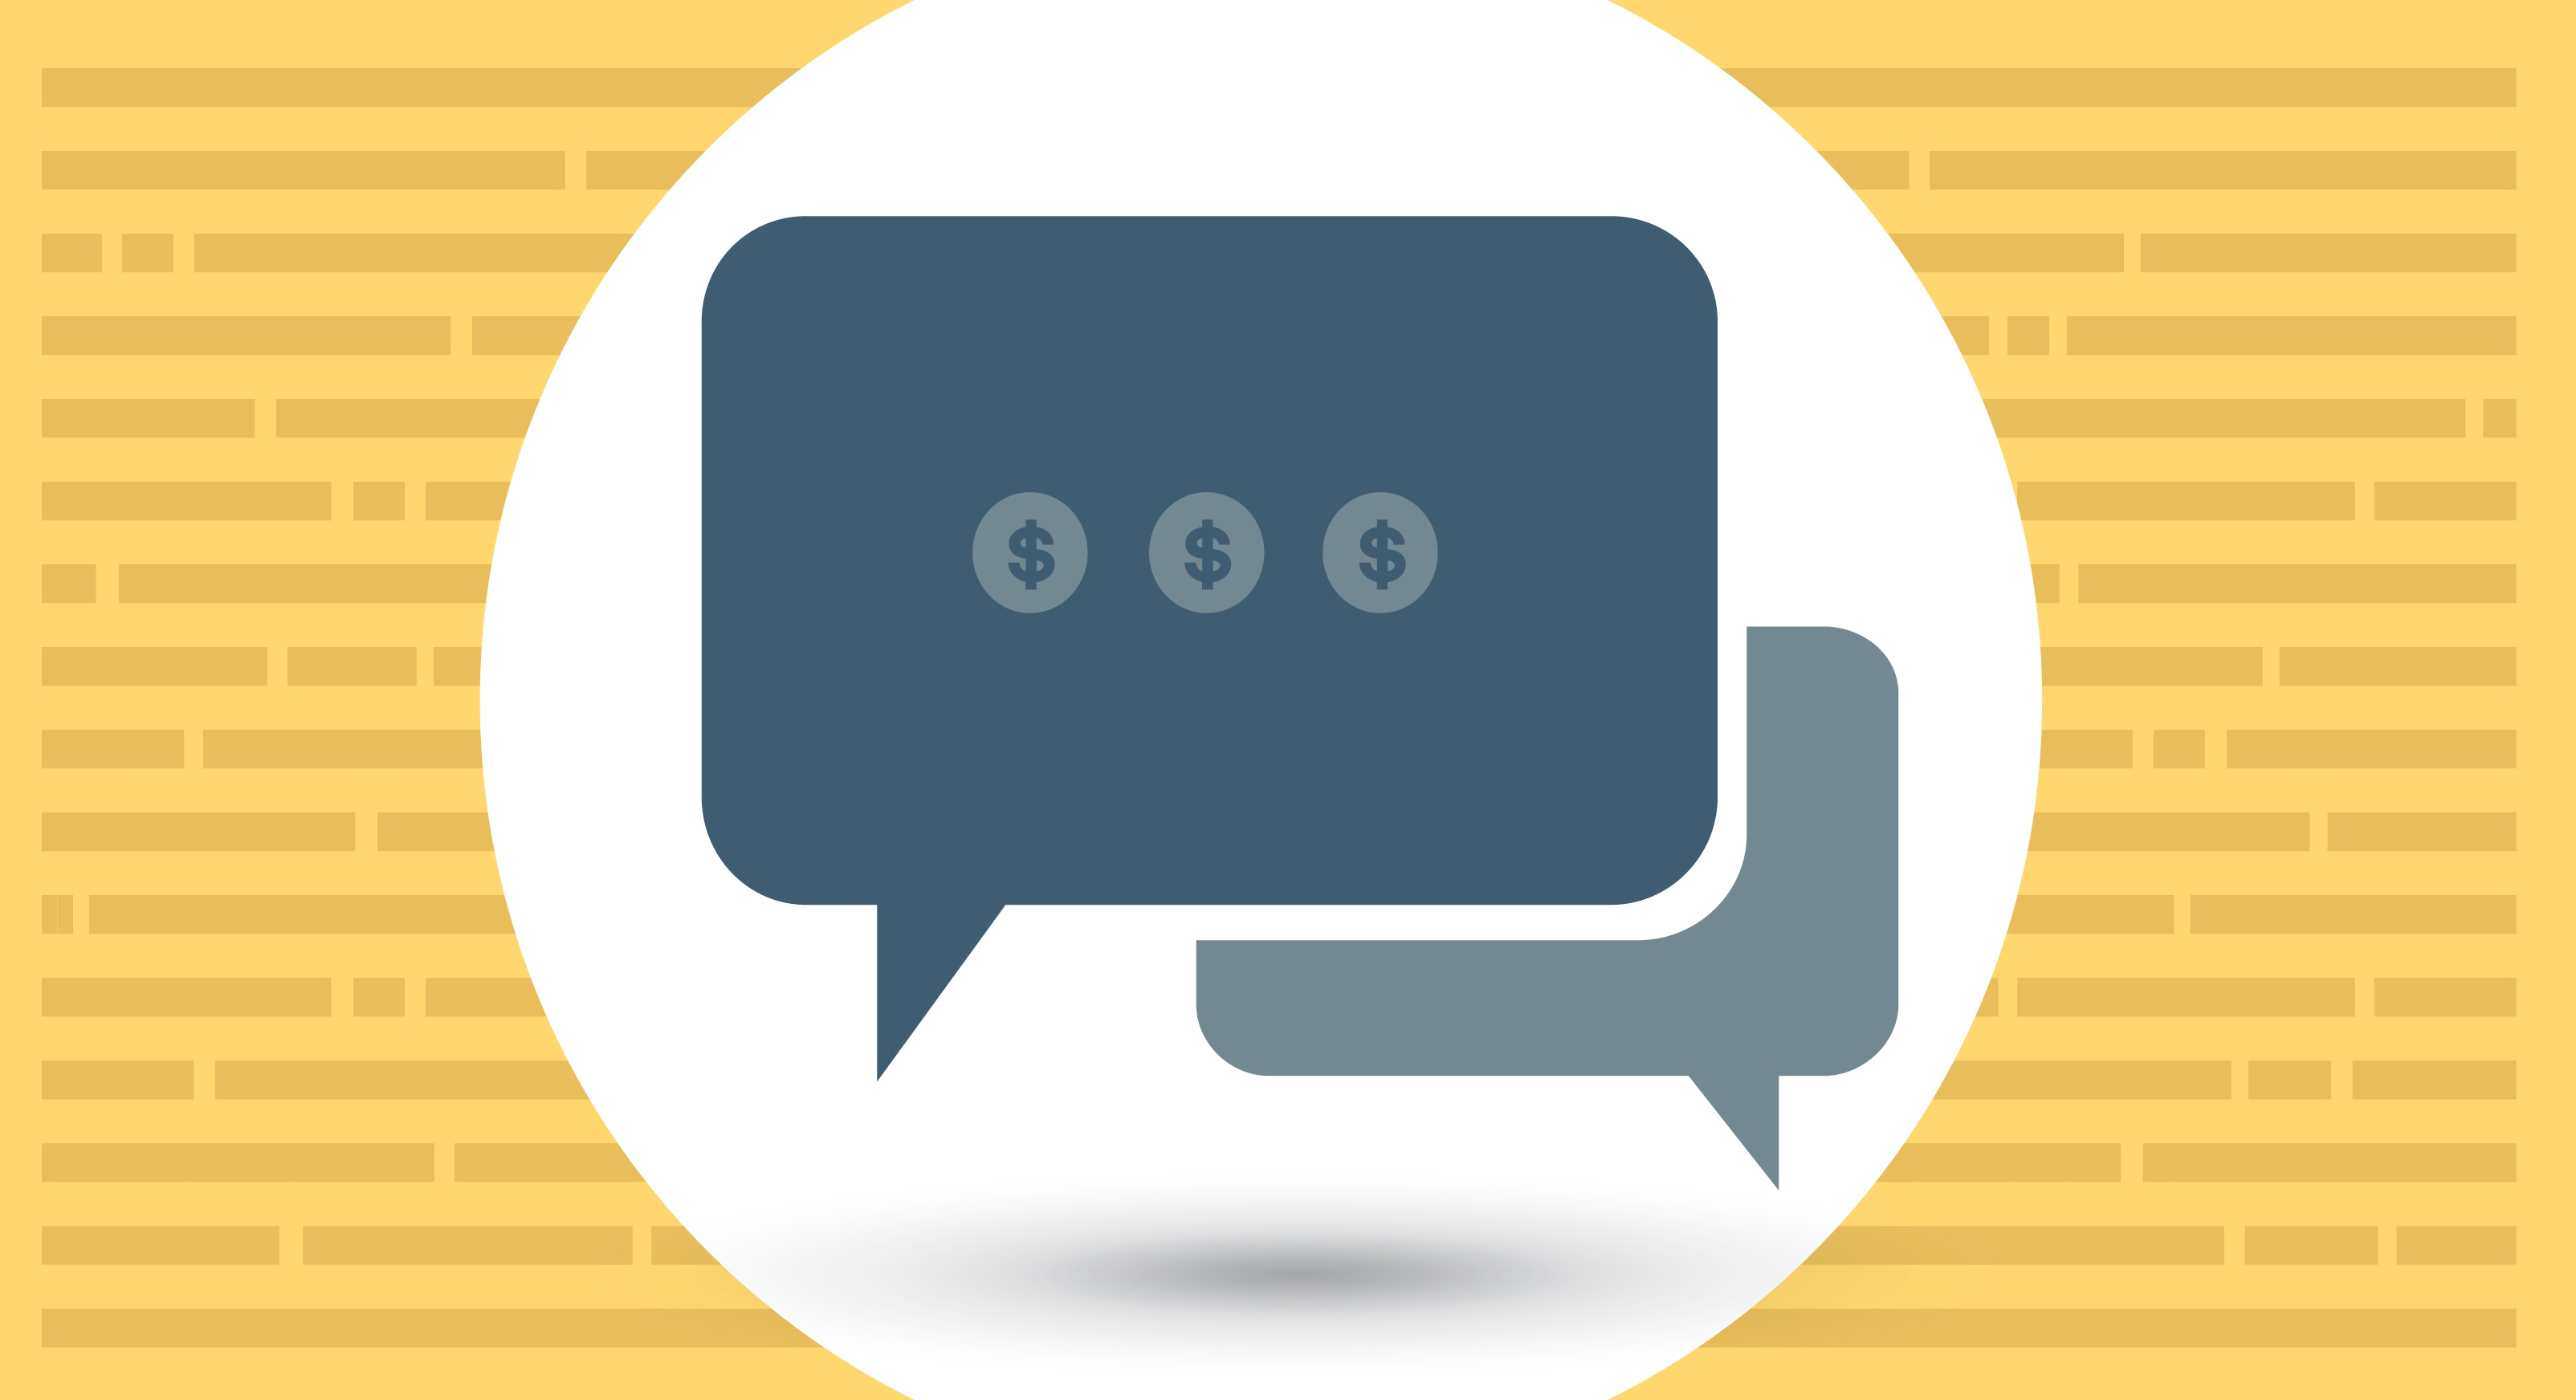 Imagewerks marketing Artificial intelligence customer experience chat bots